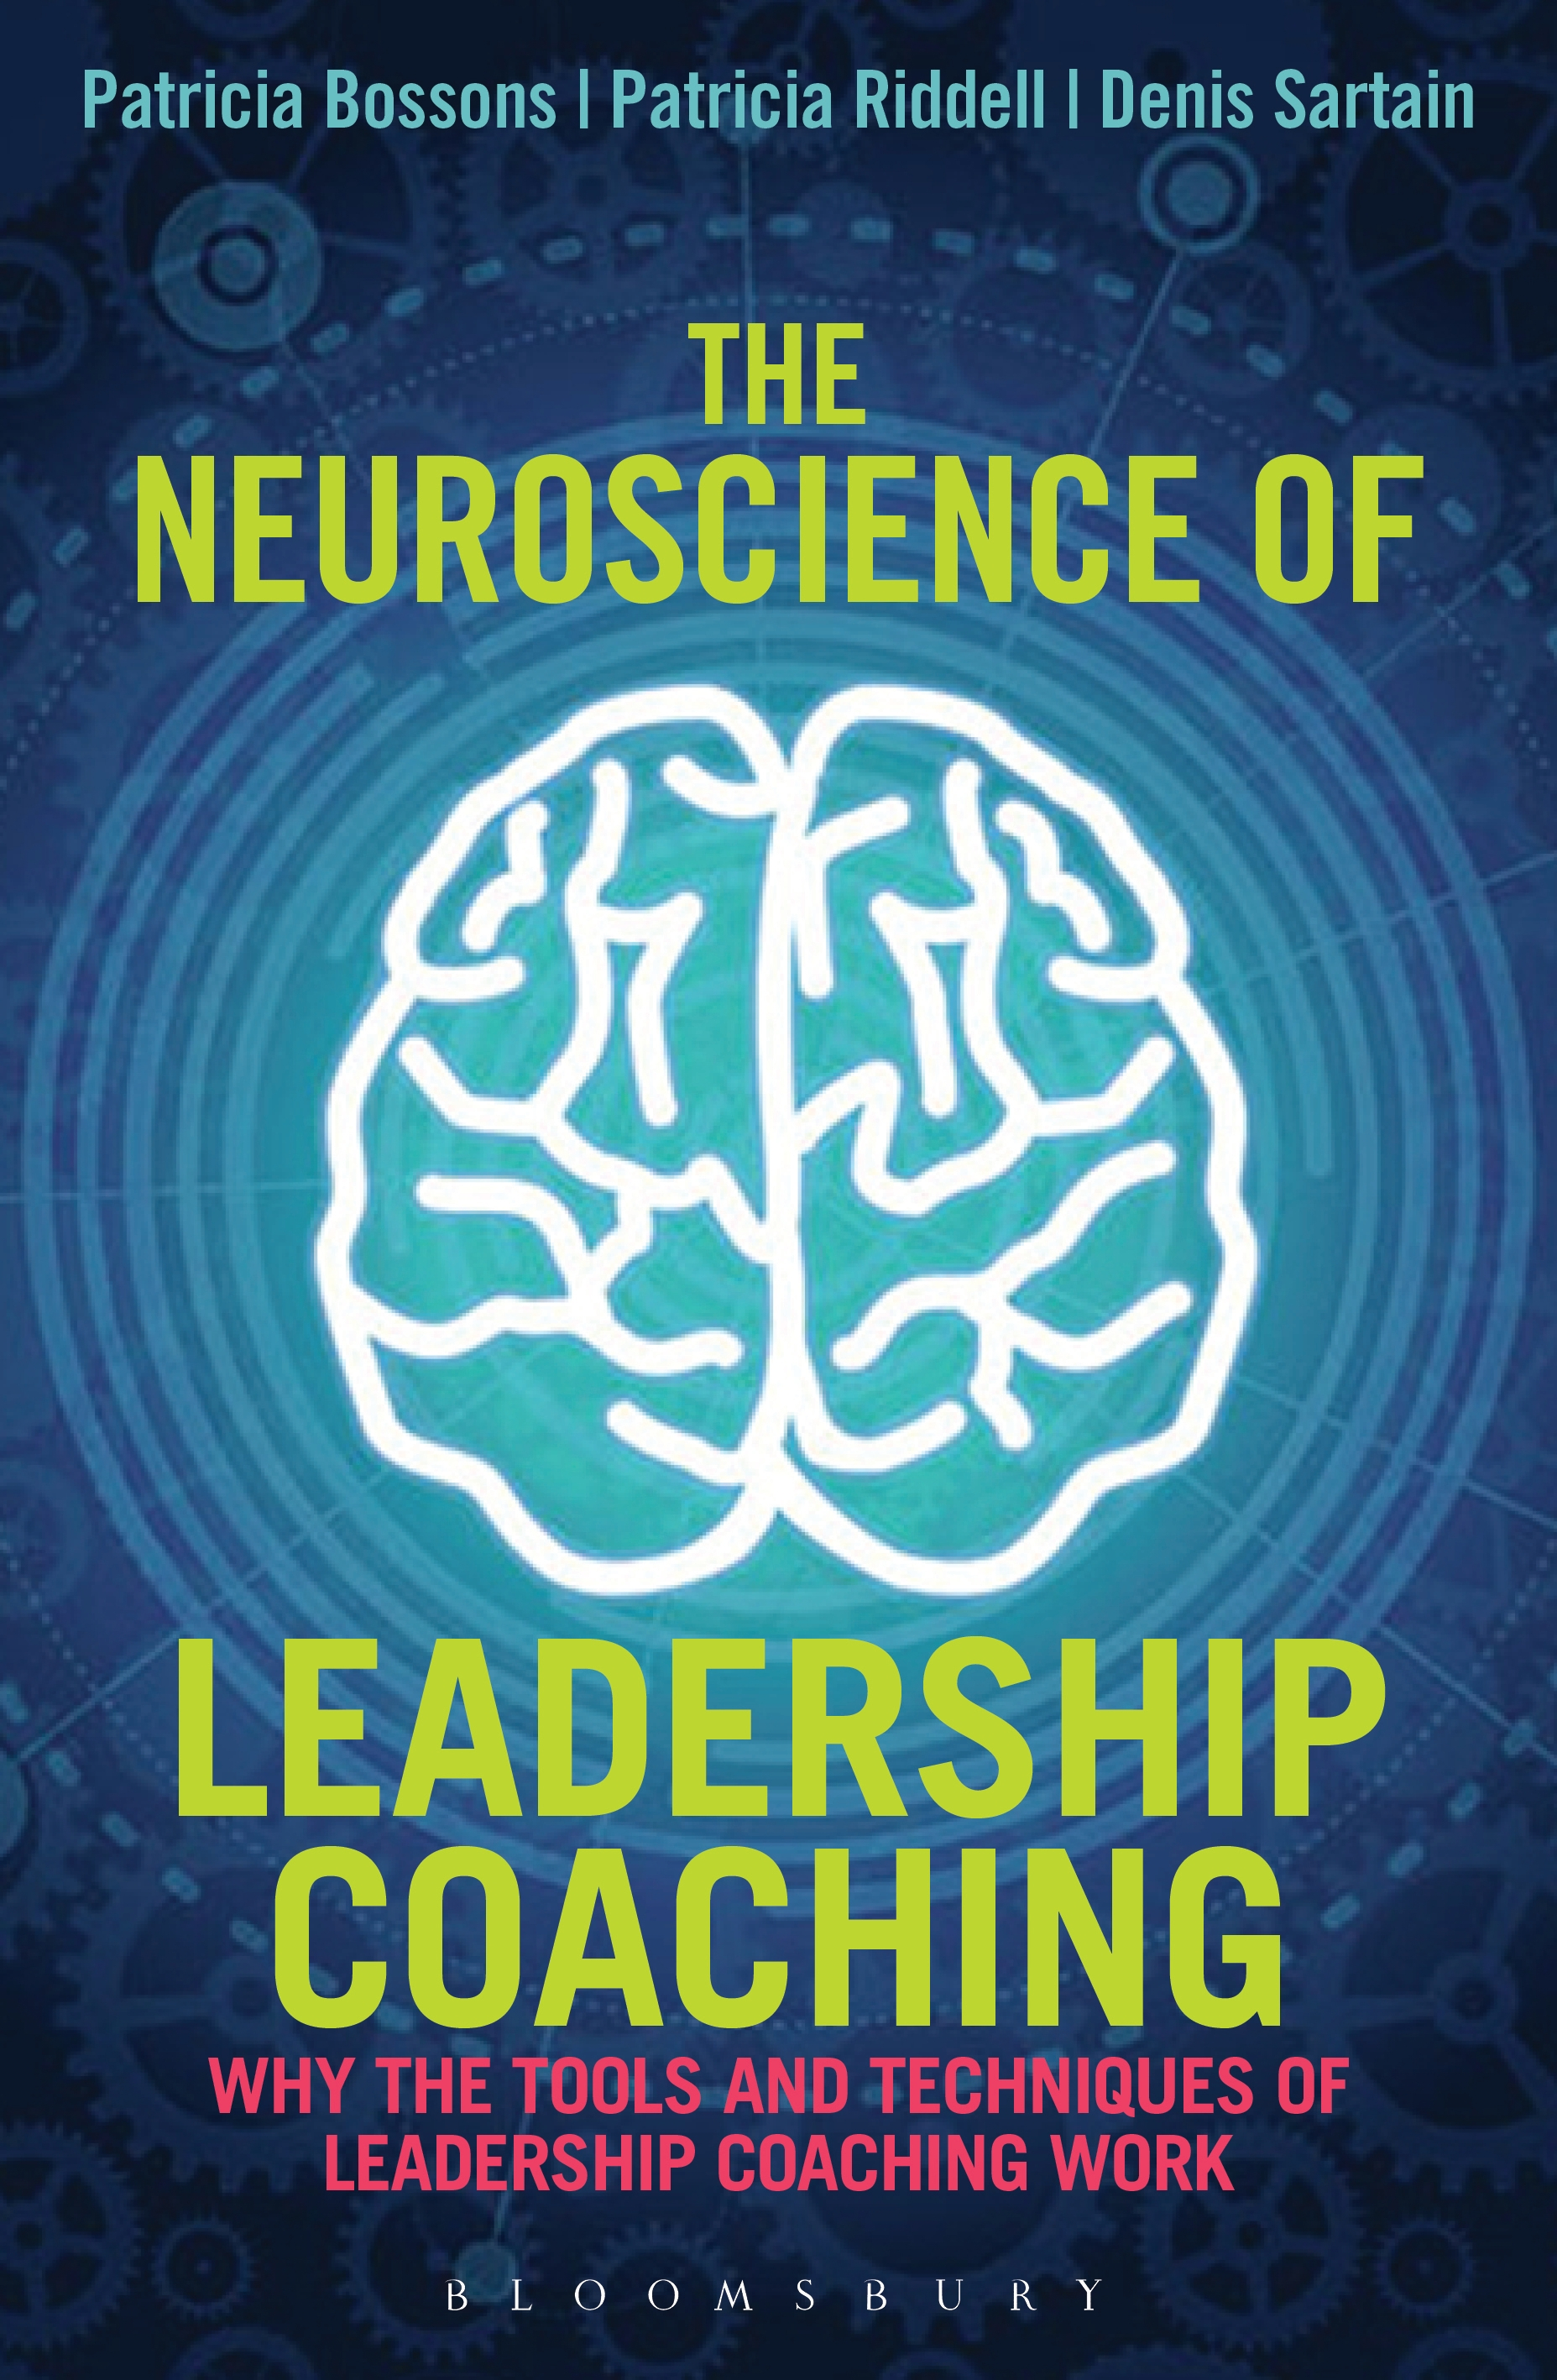 Download Ebook The Neuroscience of Leadership Coaching by Patricia Bossons Pdf